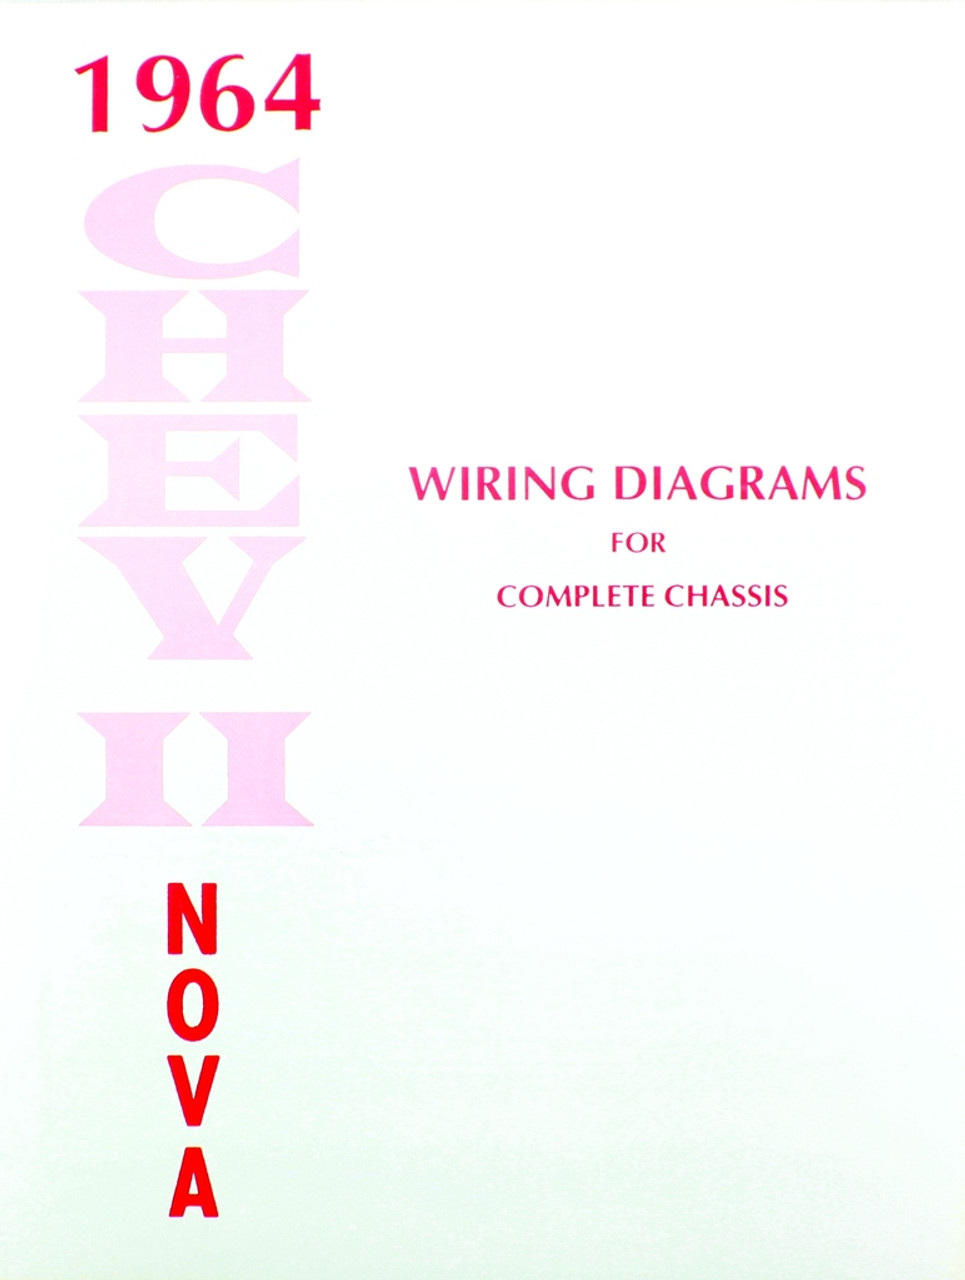 64 1964 chevy nova electrical wiring diagram manual [ 772 x 1024 Pixel ]